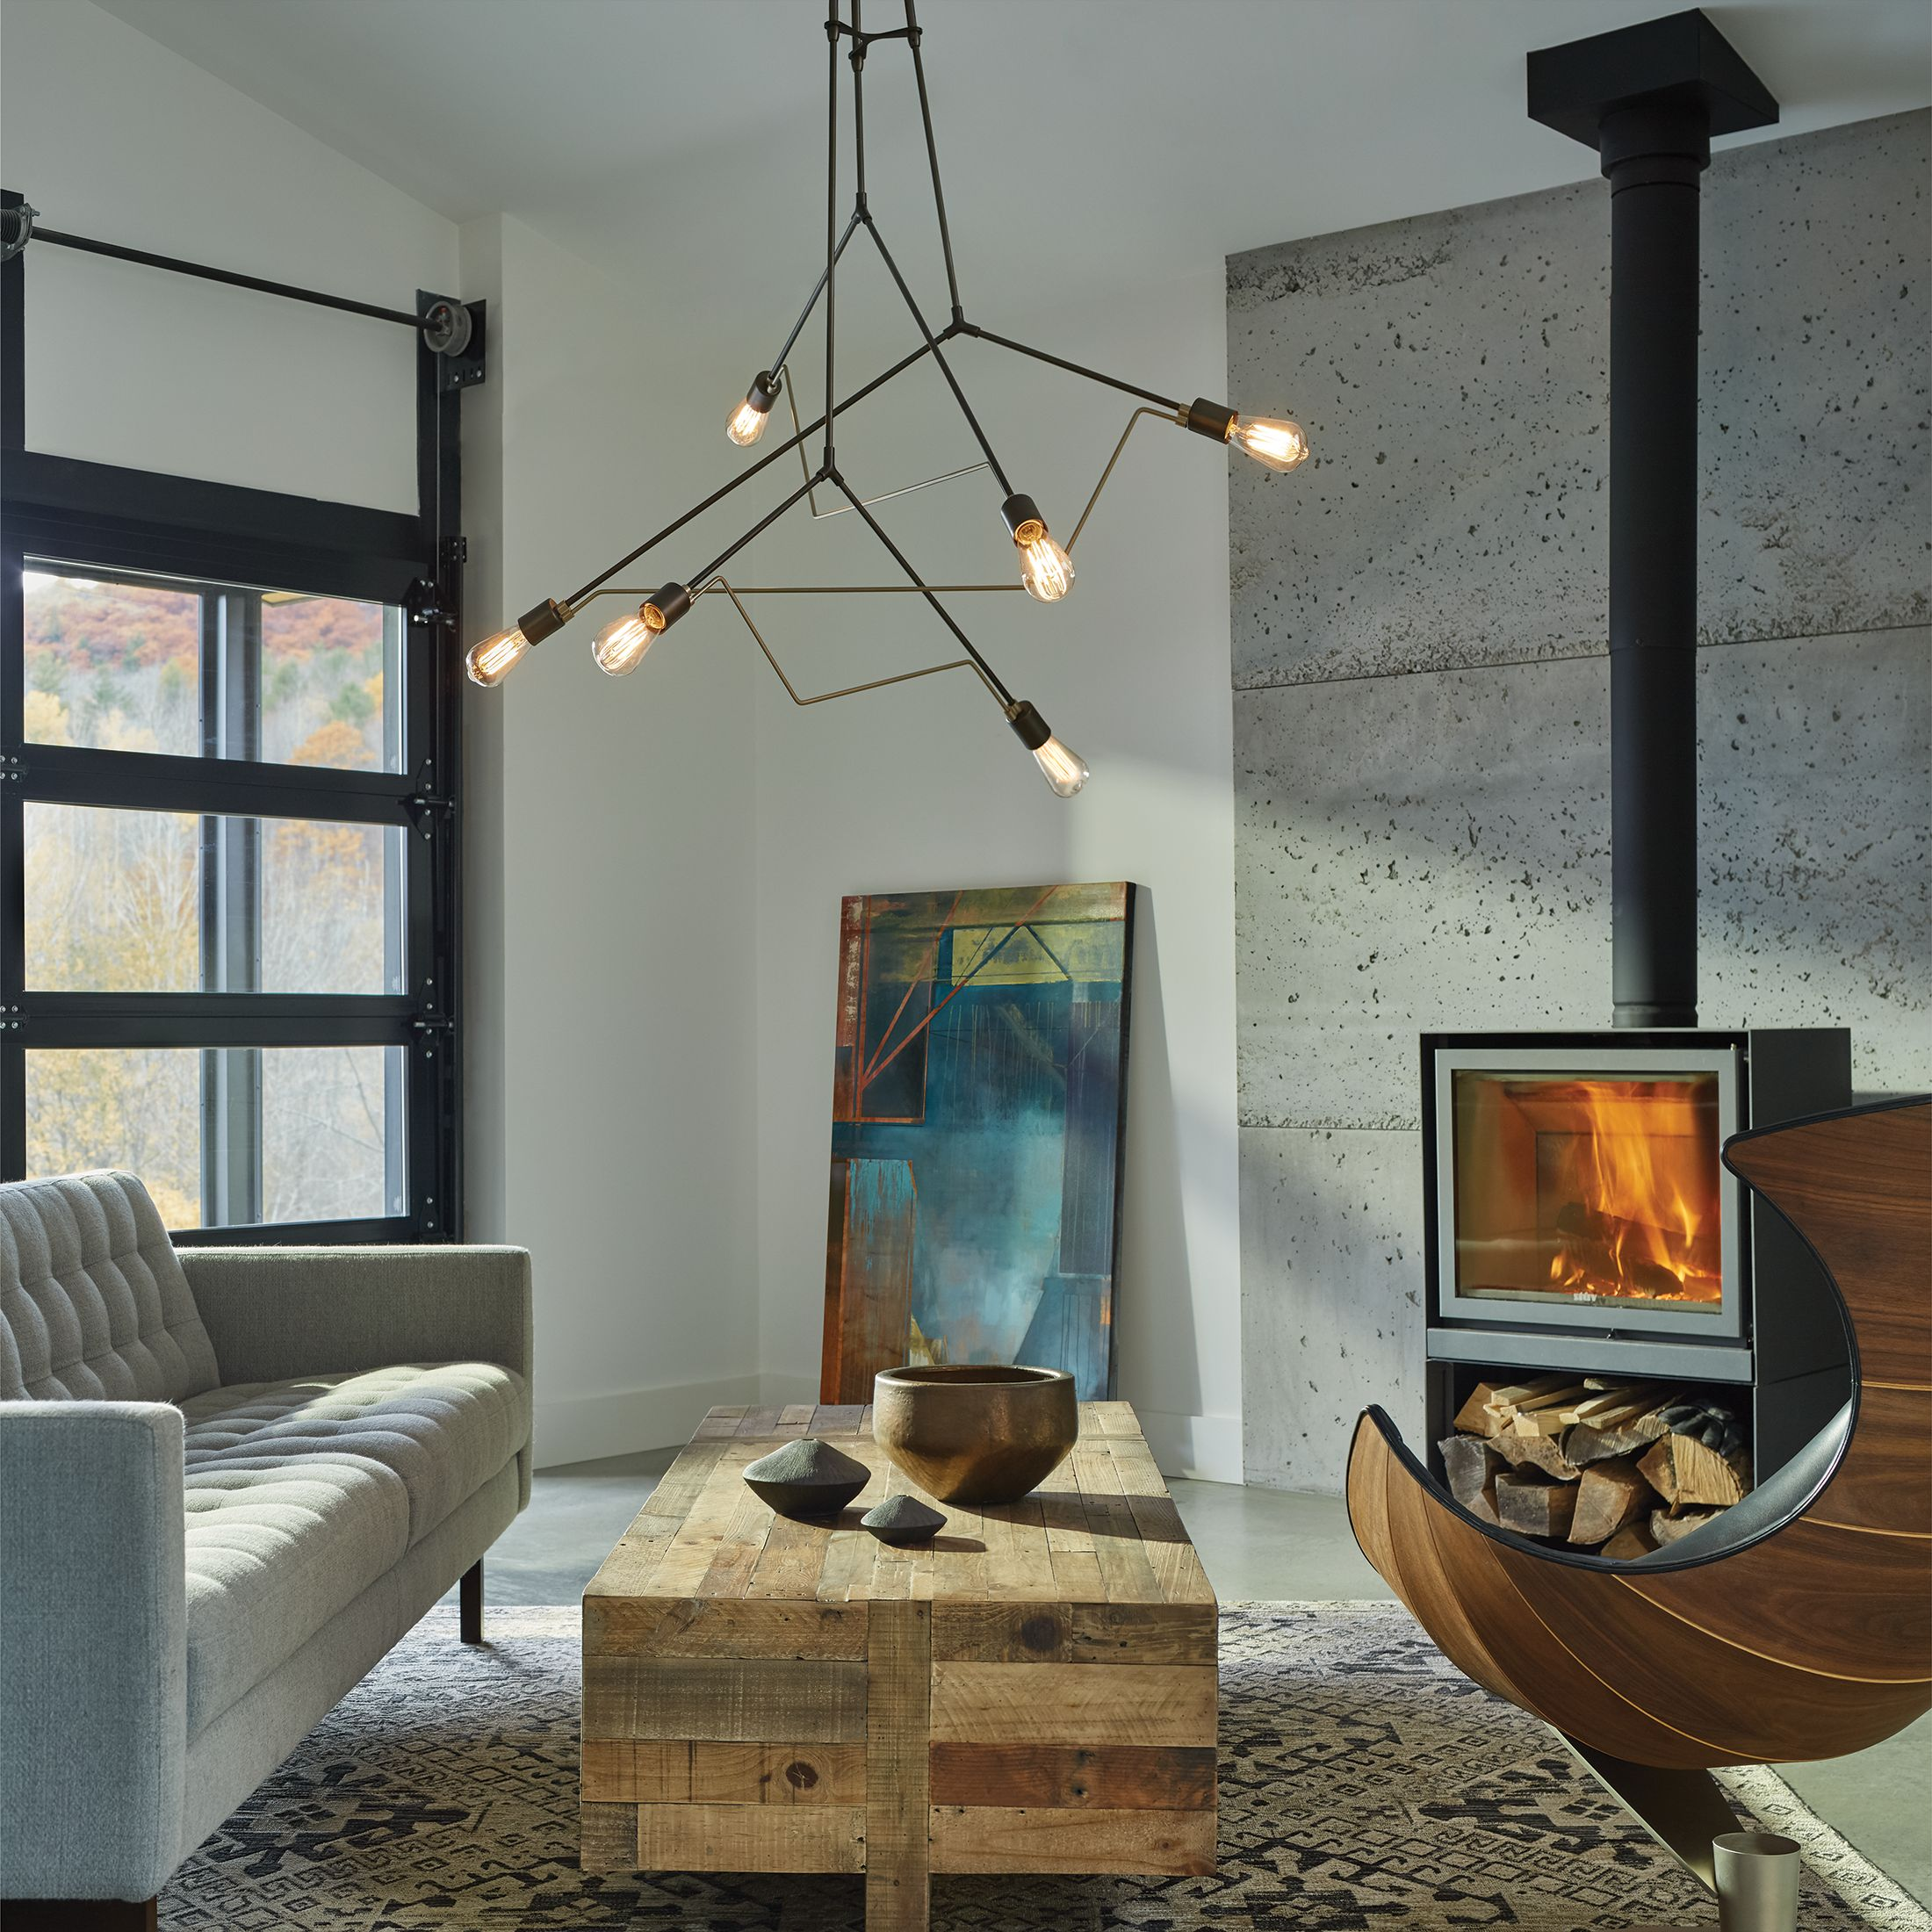 Divergence pendant hubbardton forge divergence pendant aloadofball Gallery